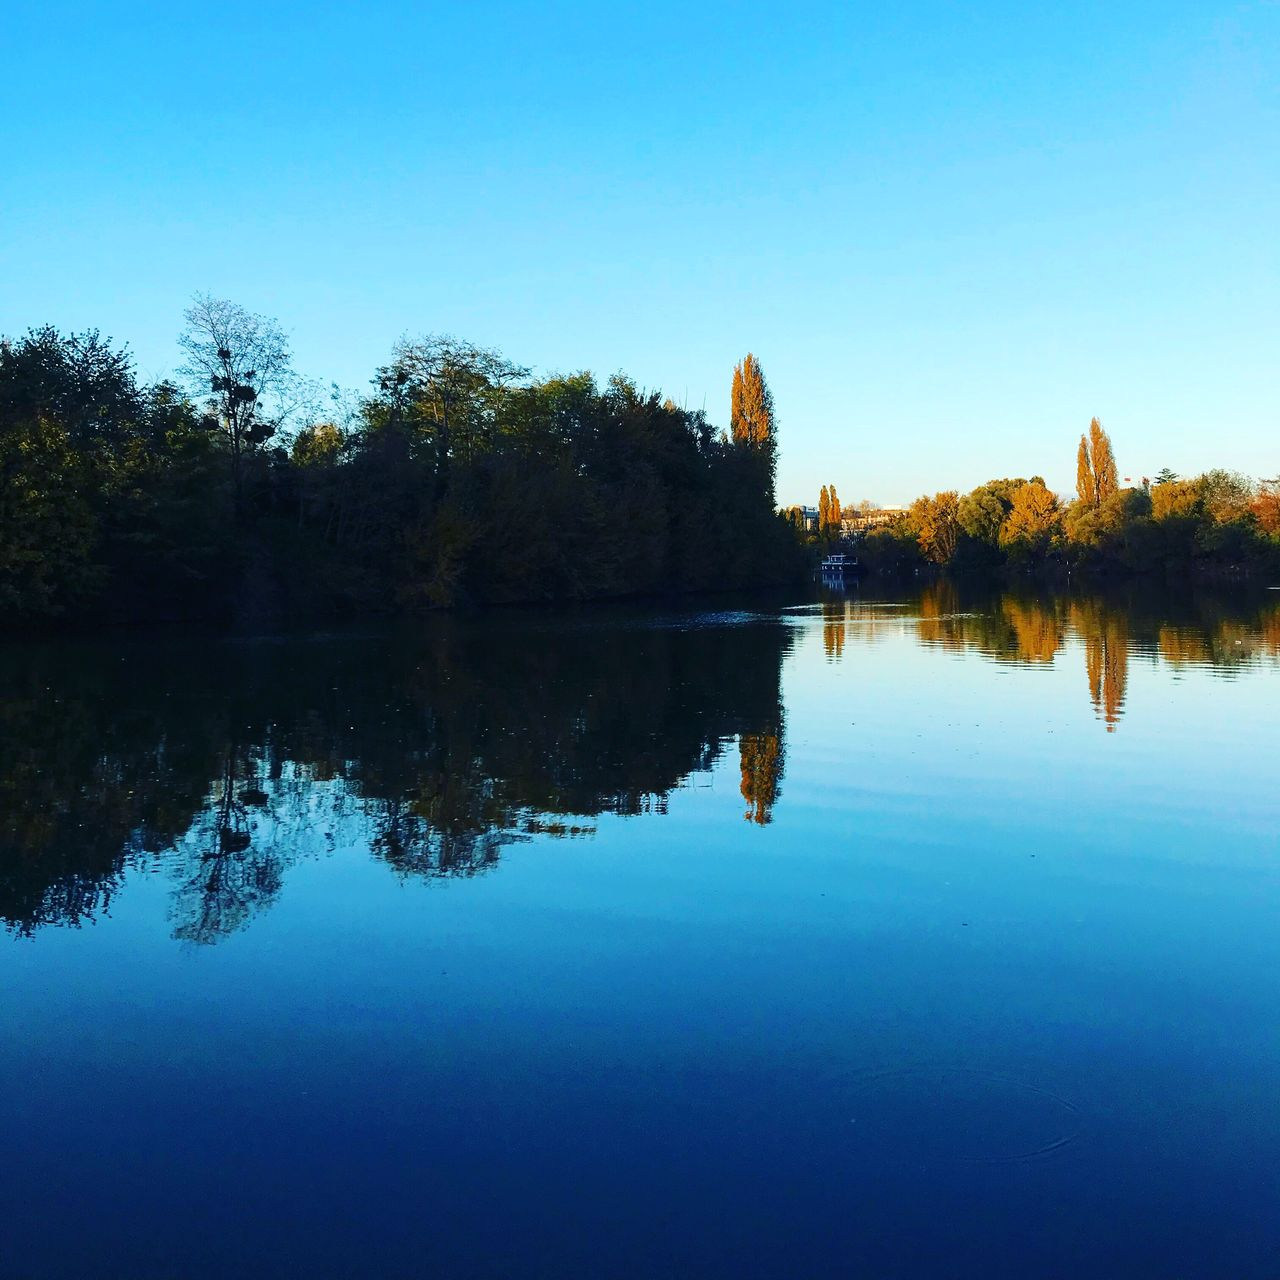 reflection, water, tree, lake, clear sky, tranquil scene, blue, nature, waterfront, beauty in nature, outdoors, scenics, no people, silhouette, tranquility, sky, symmetry, day